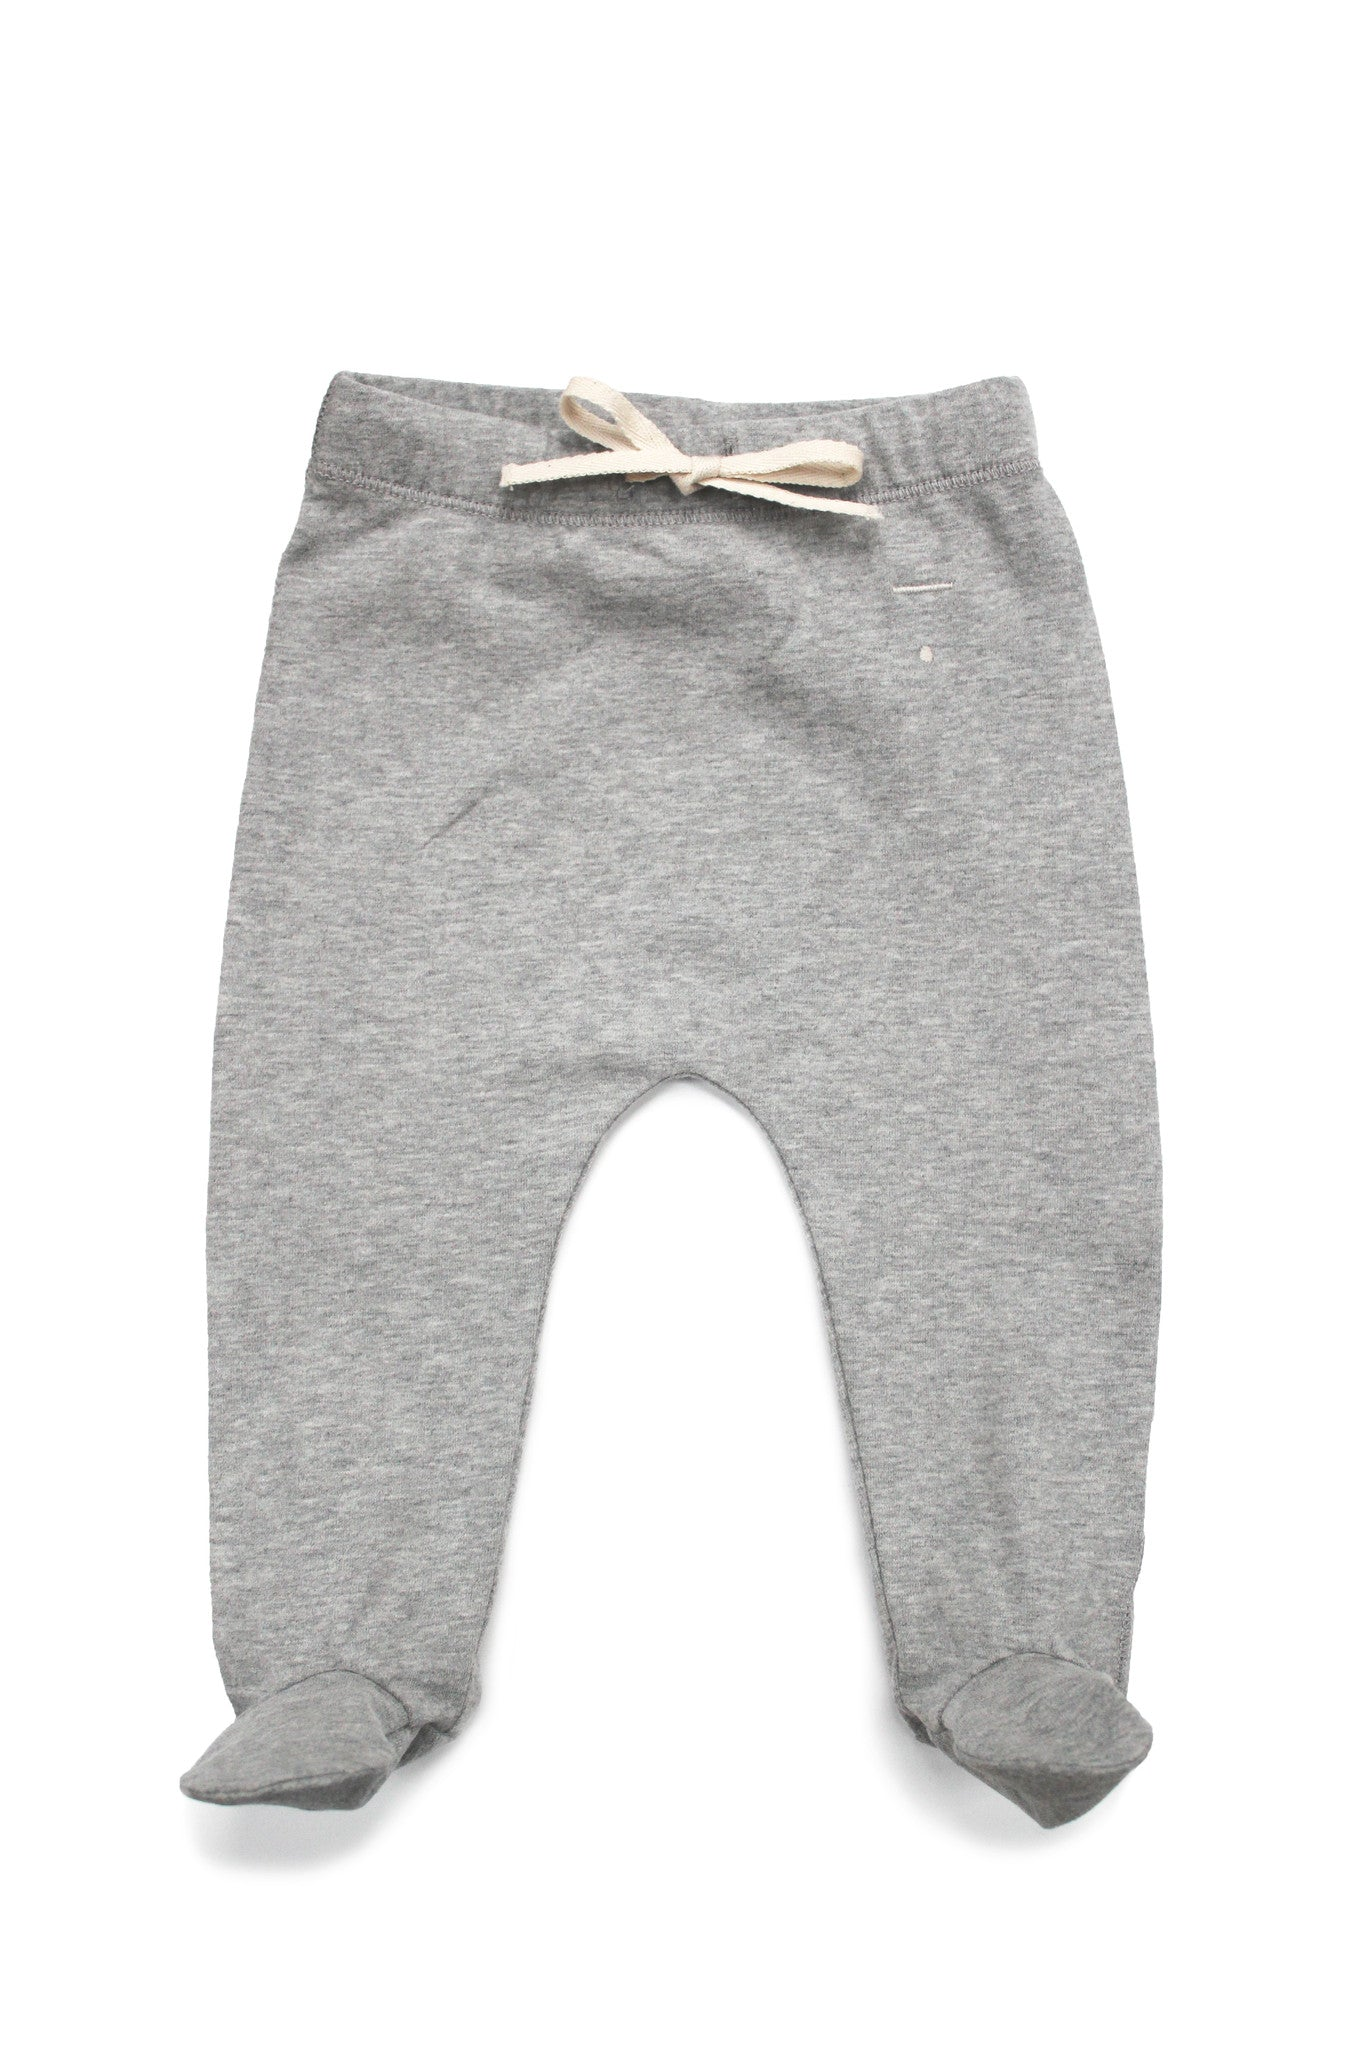 Gray Label Grey Melange Footies - Ladida